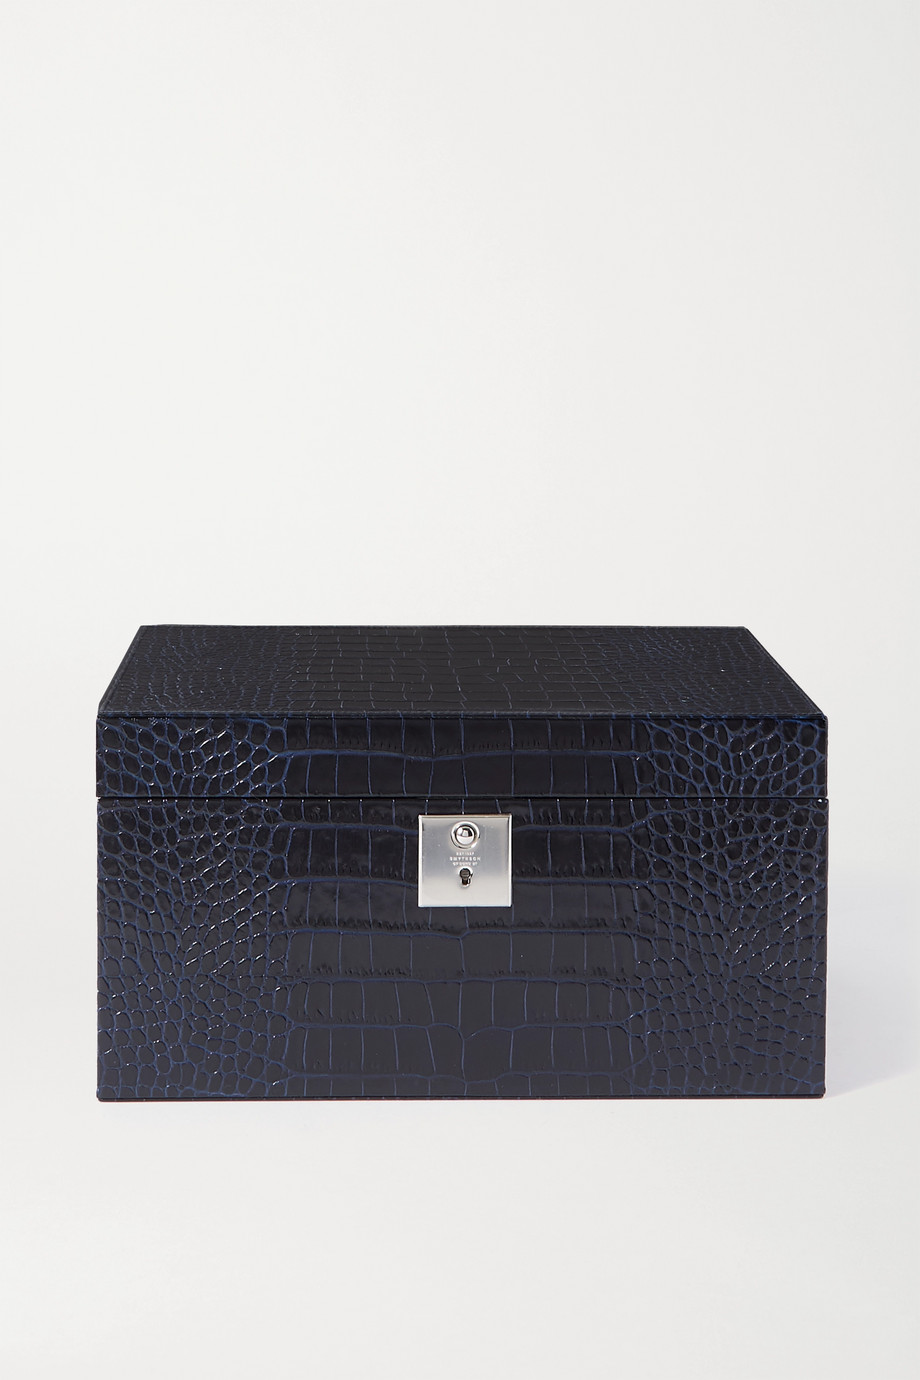 Smythson Mara croc-effect leather jewellery box